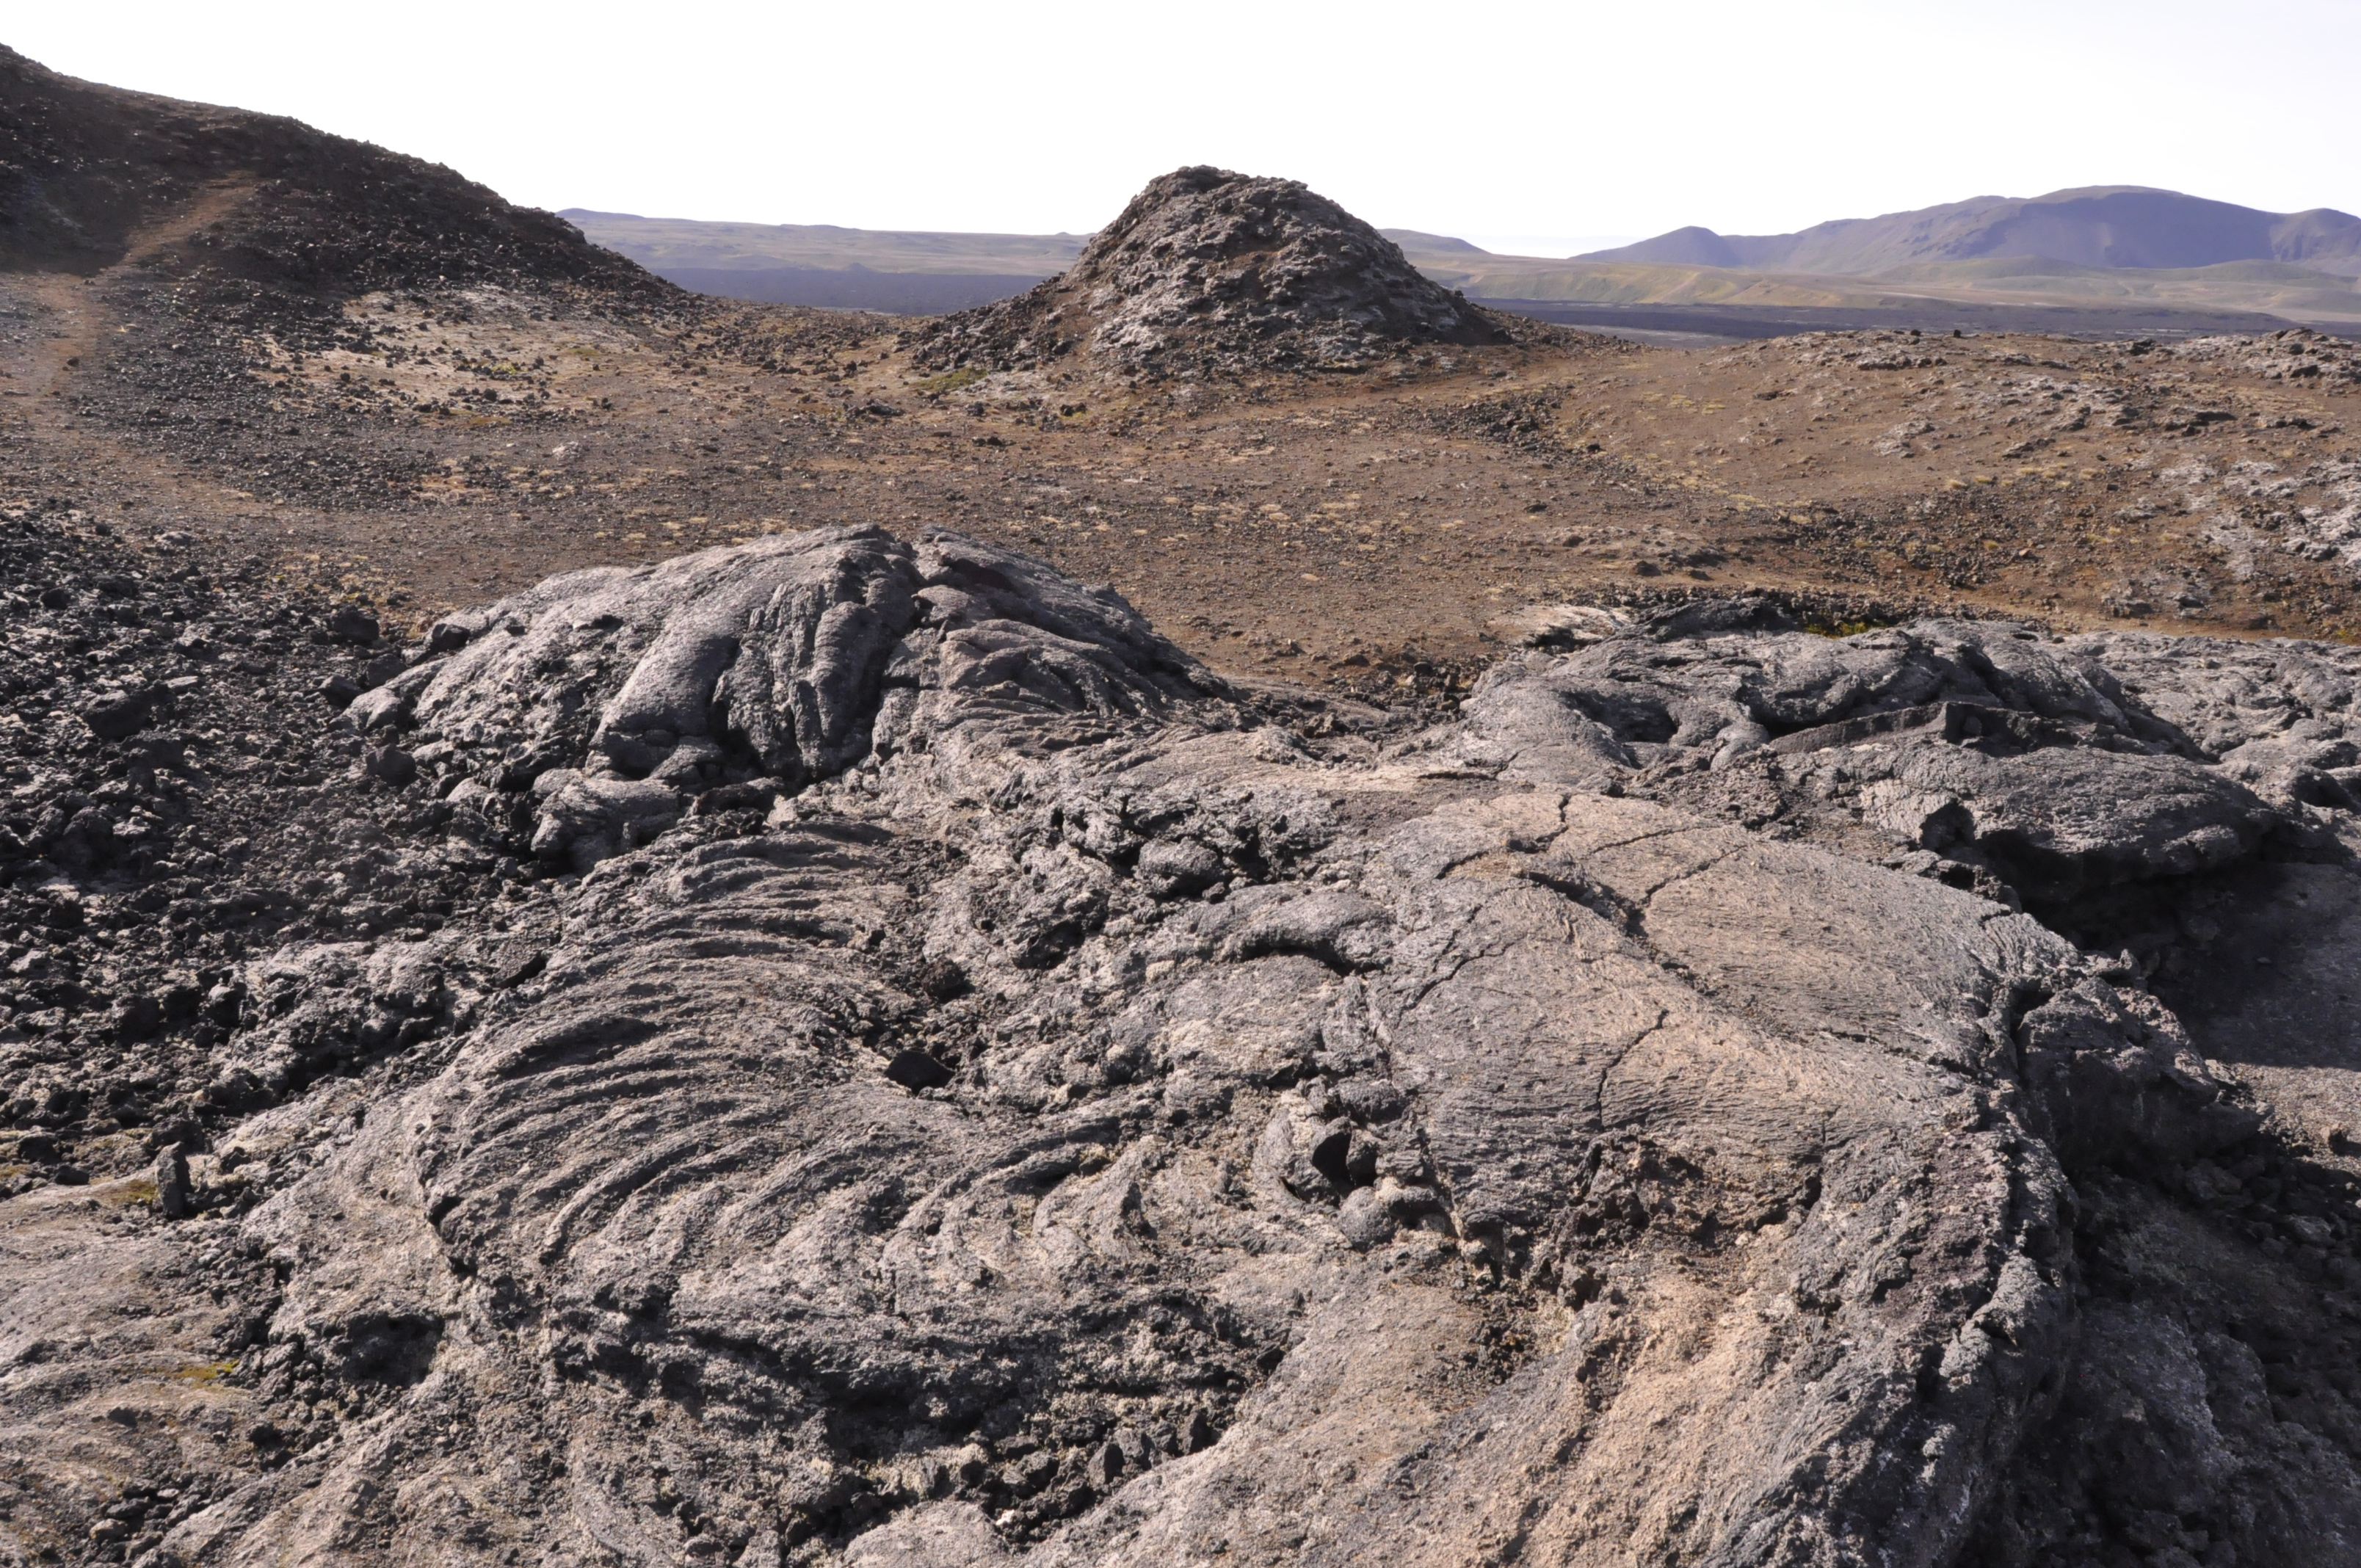 Stone Walks: The Affective Time of Volcanic Rock